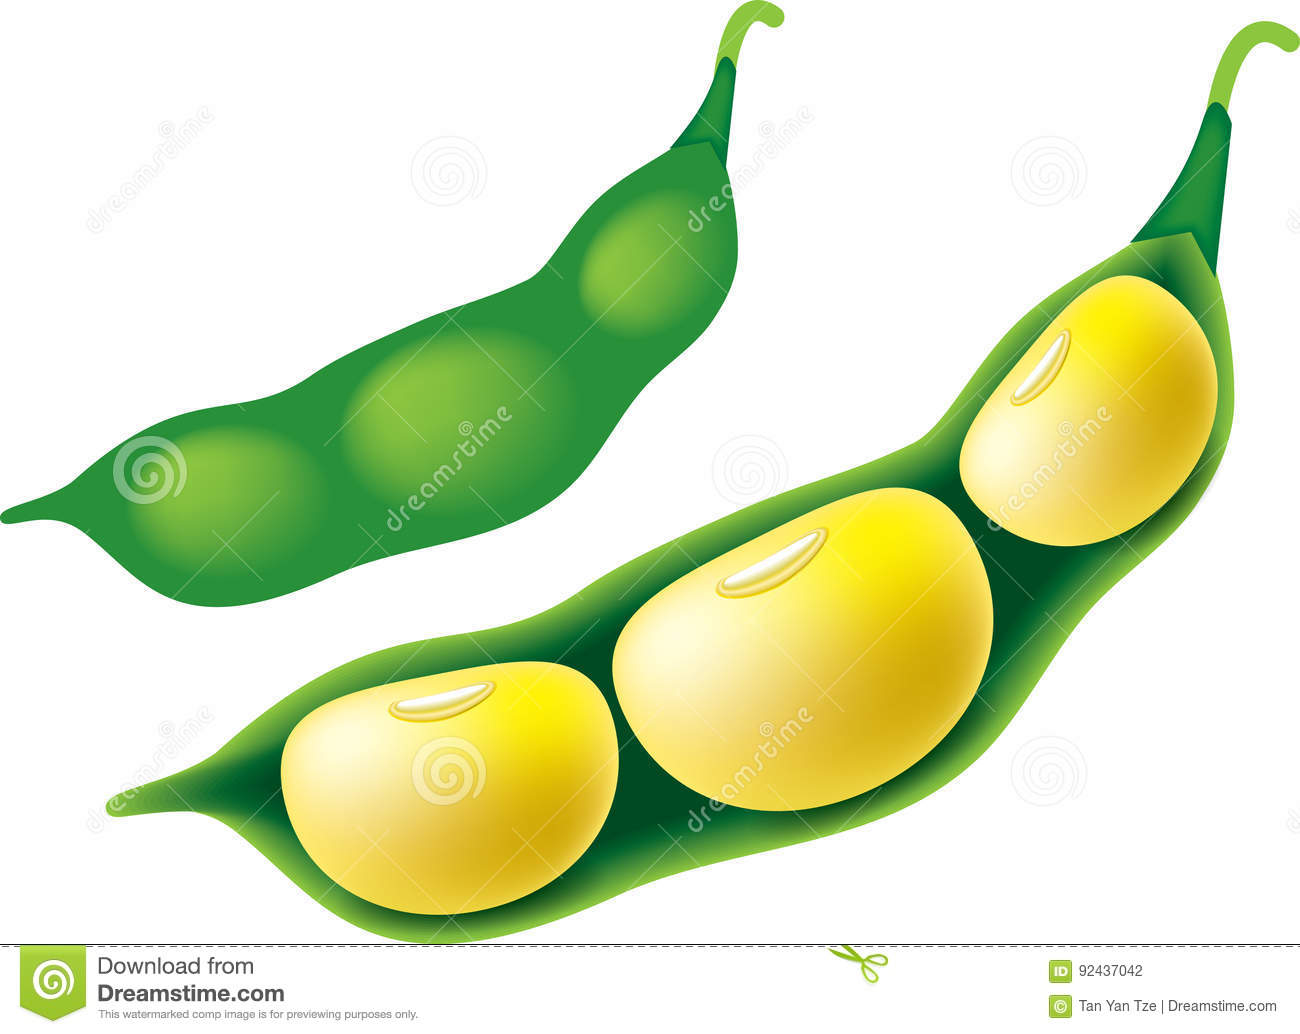 Soya Bean stock illustration. Illustration of clipart.